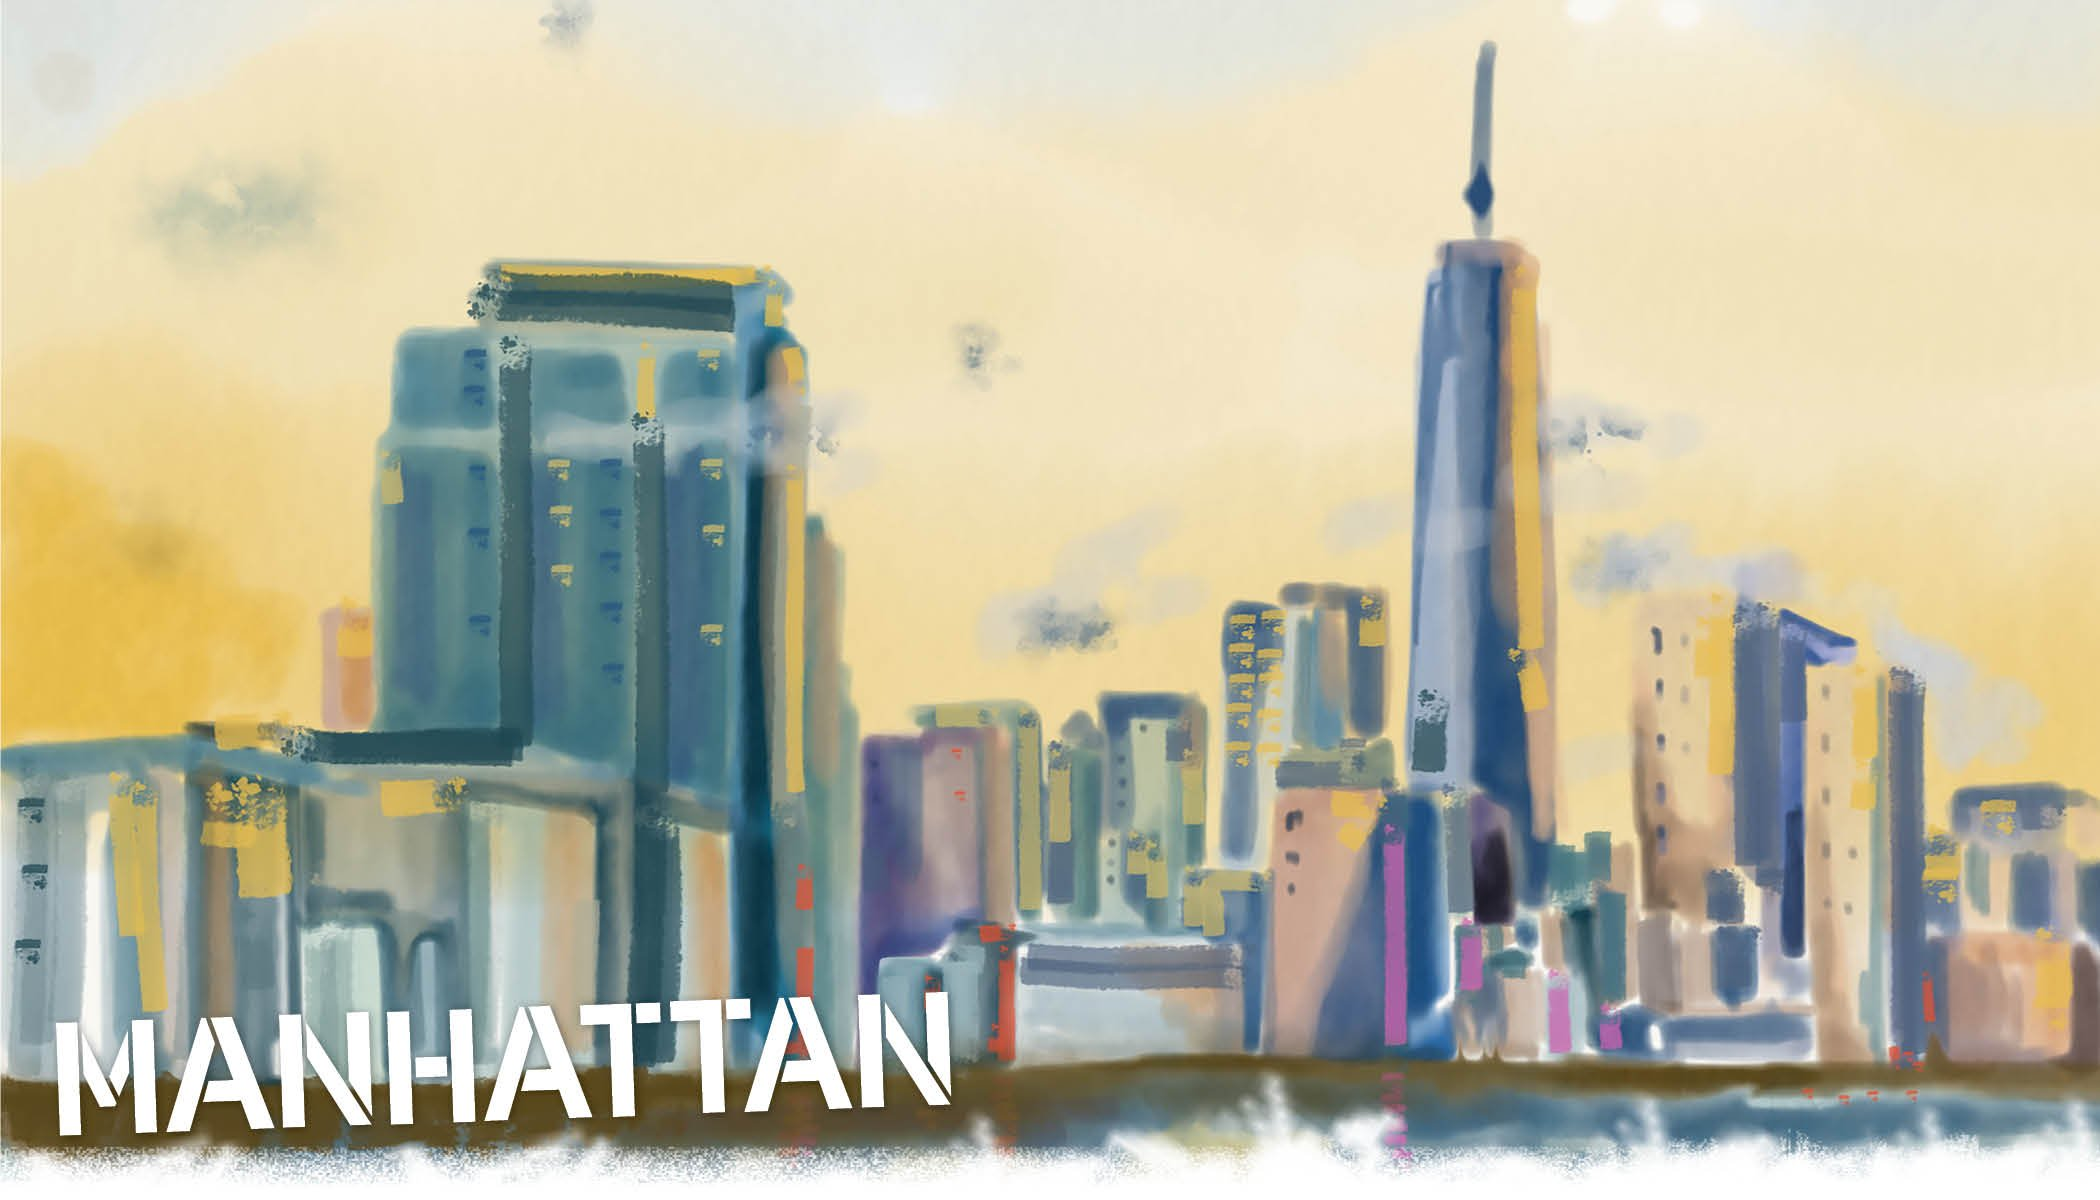 Manhattan Skyline is unlike any other